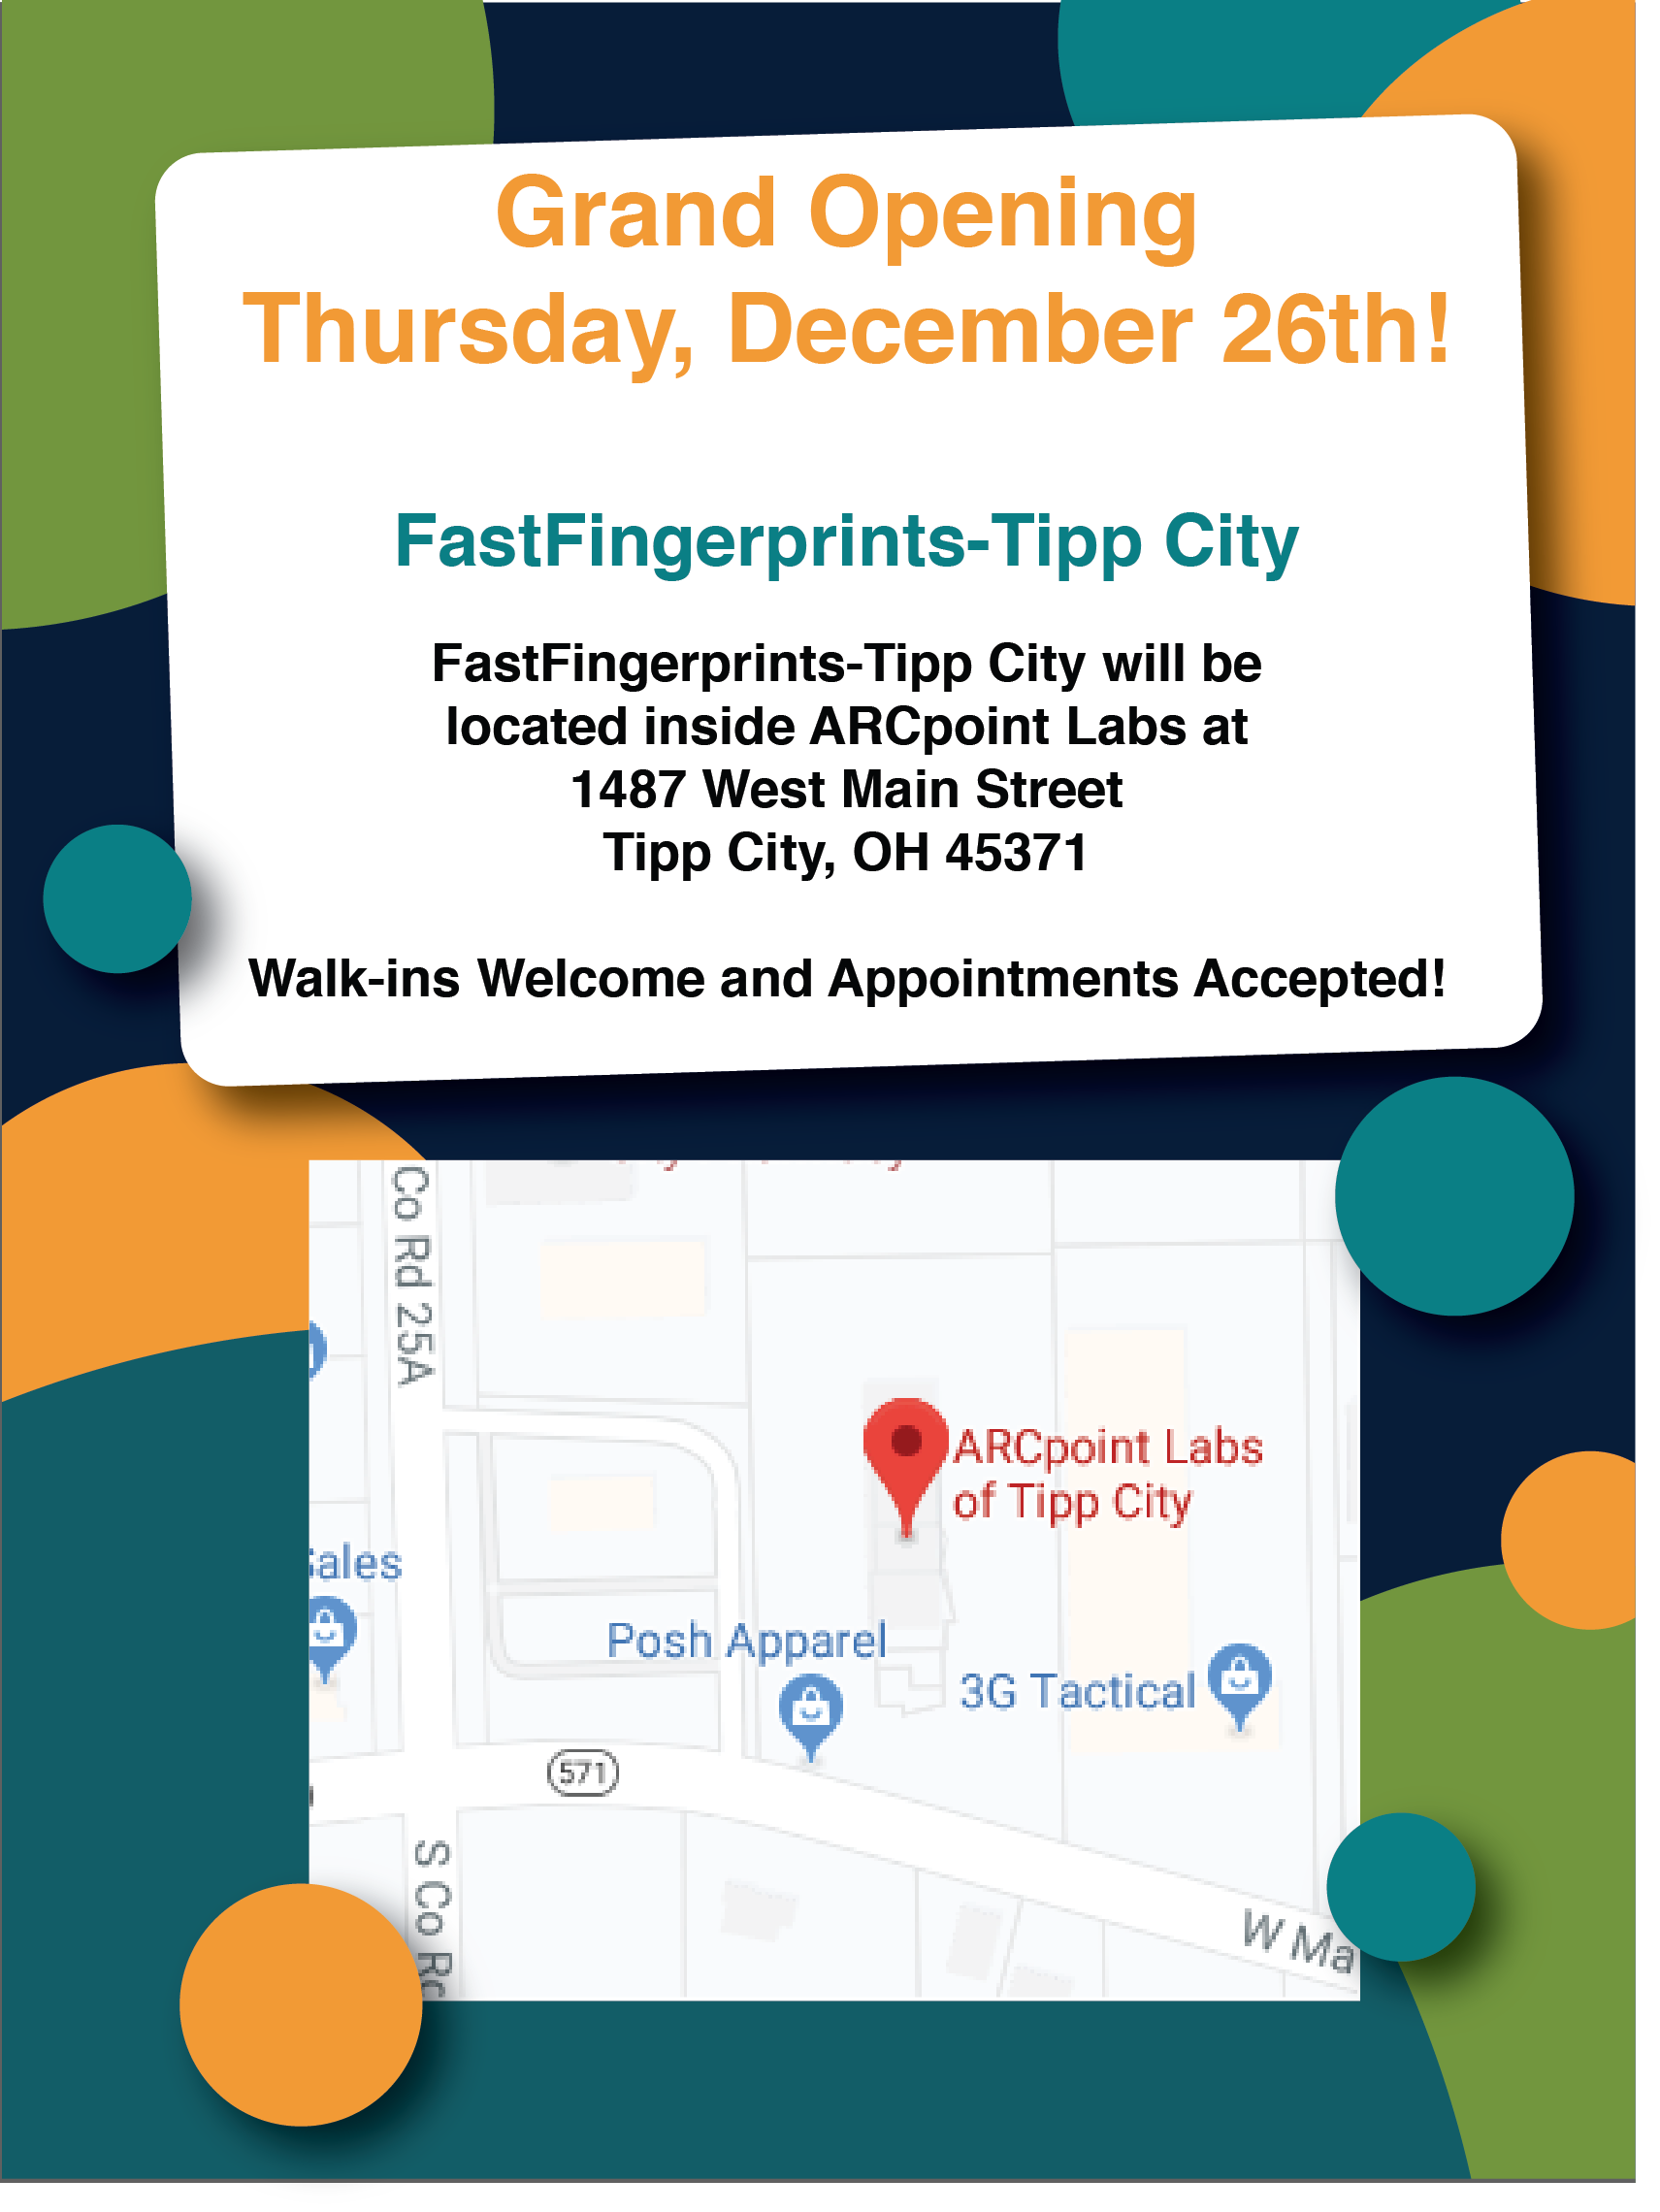 Grand Opening Dec 26th Background Check Live Scan Fingerprinting Free To Use Images